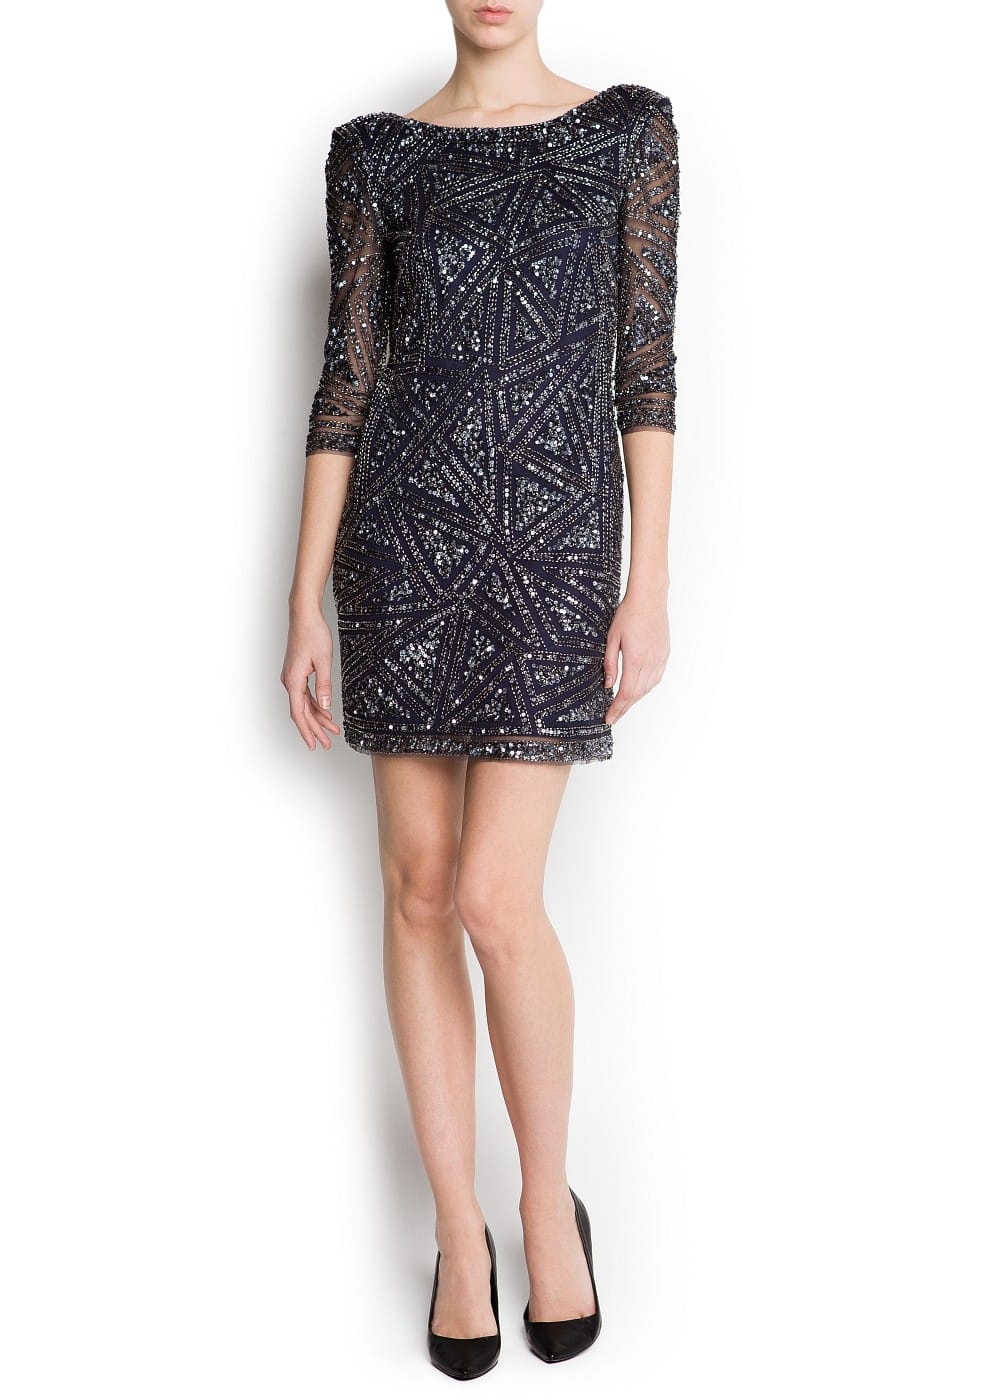 Geometric embroidered dress